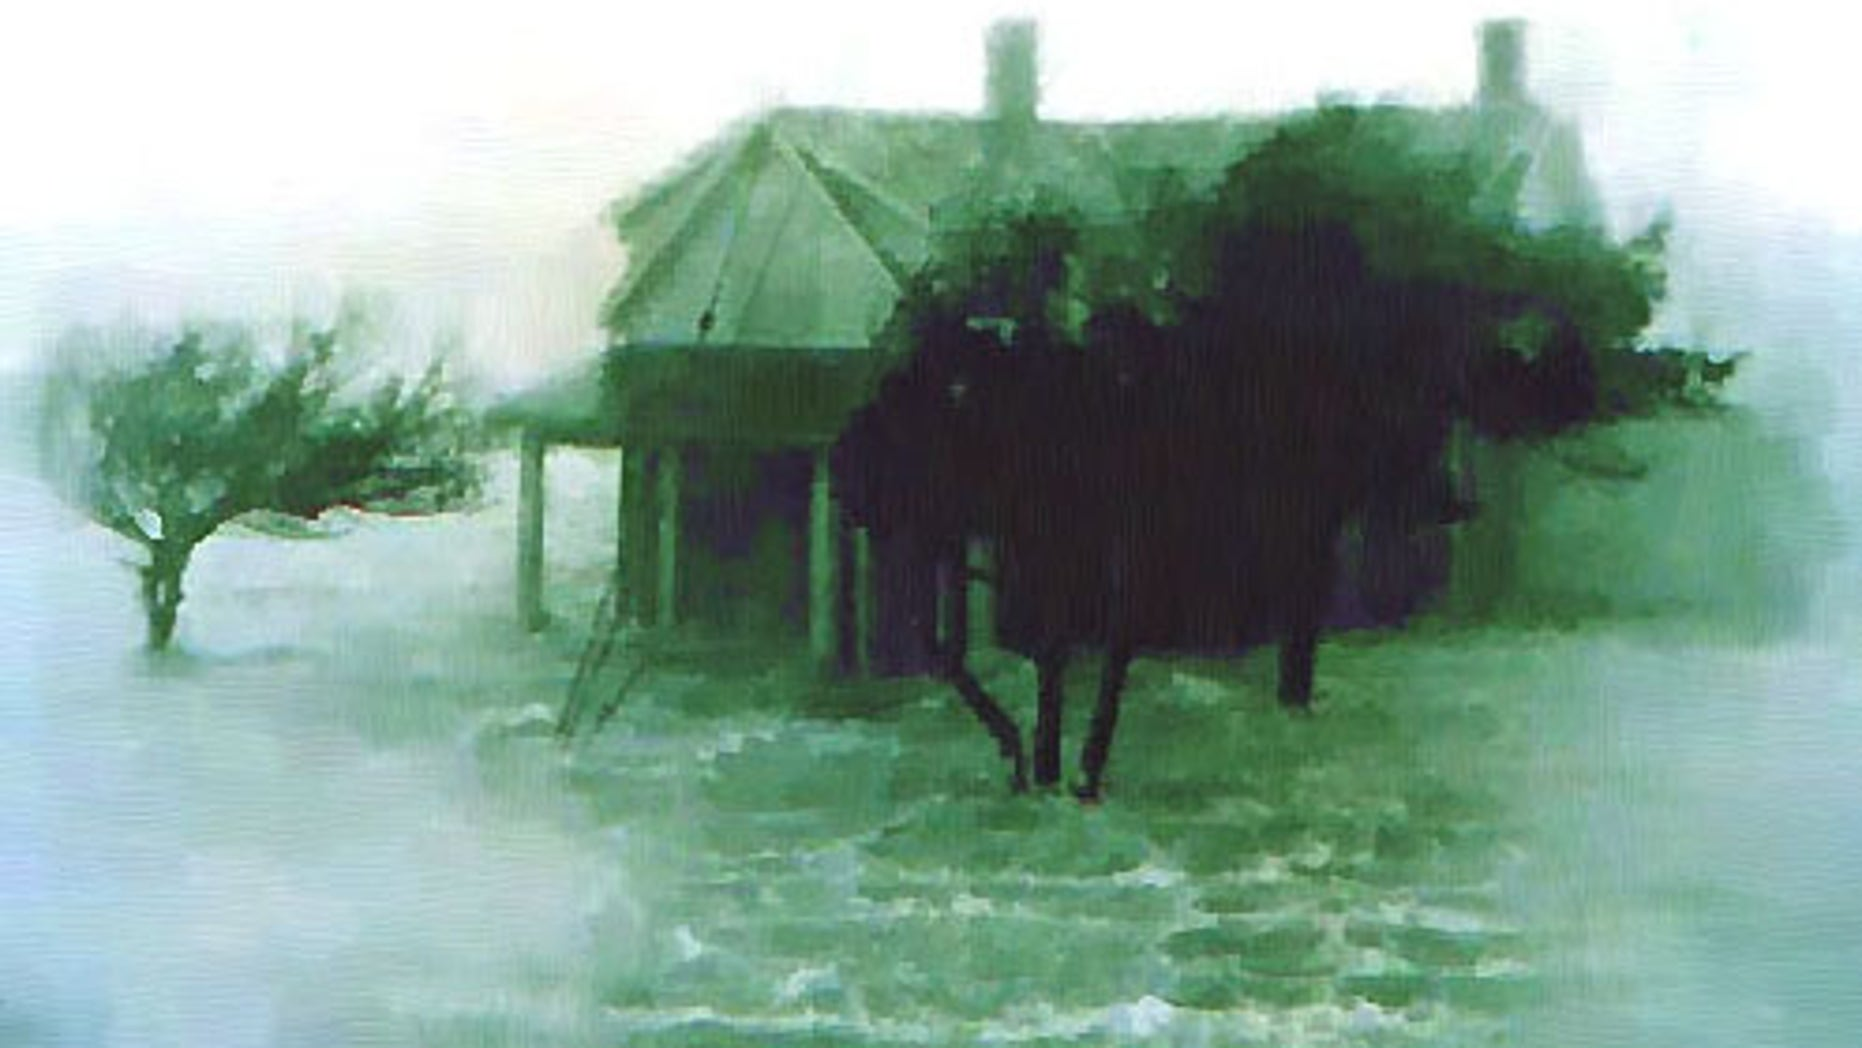 An image showing flooding from Hurricane Audrey, which killed about 500 people in 1957.